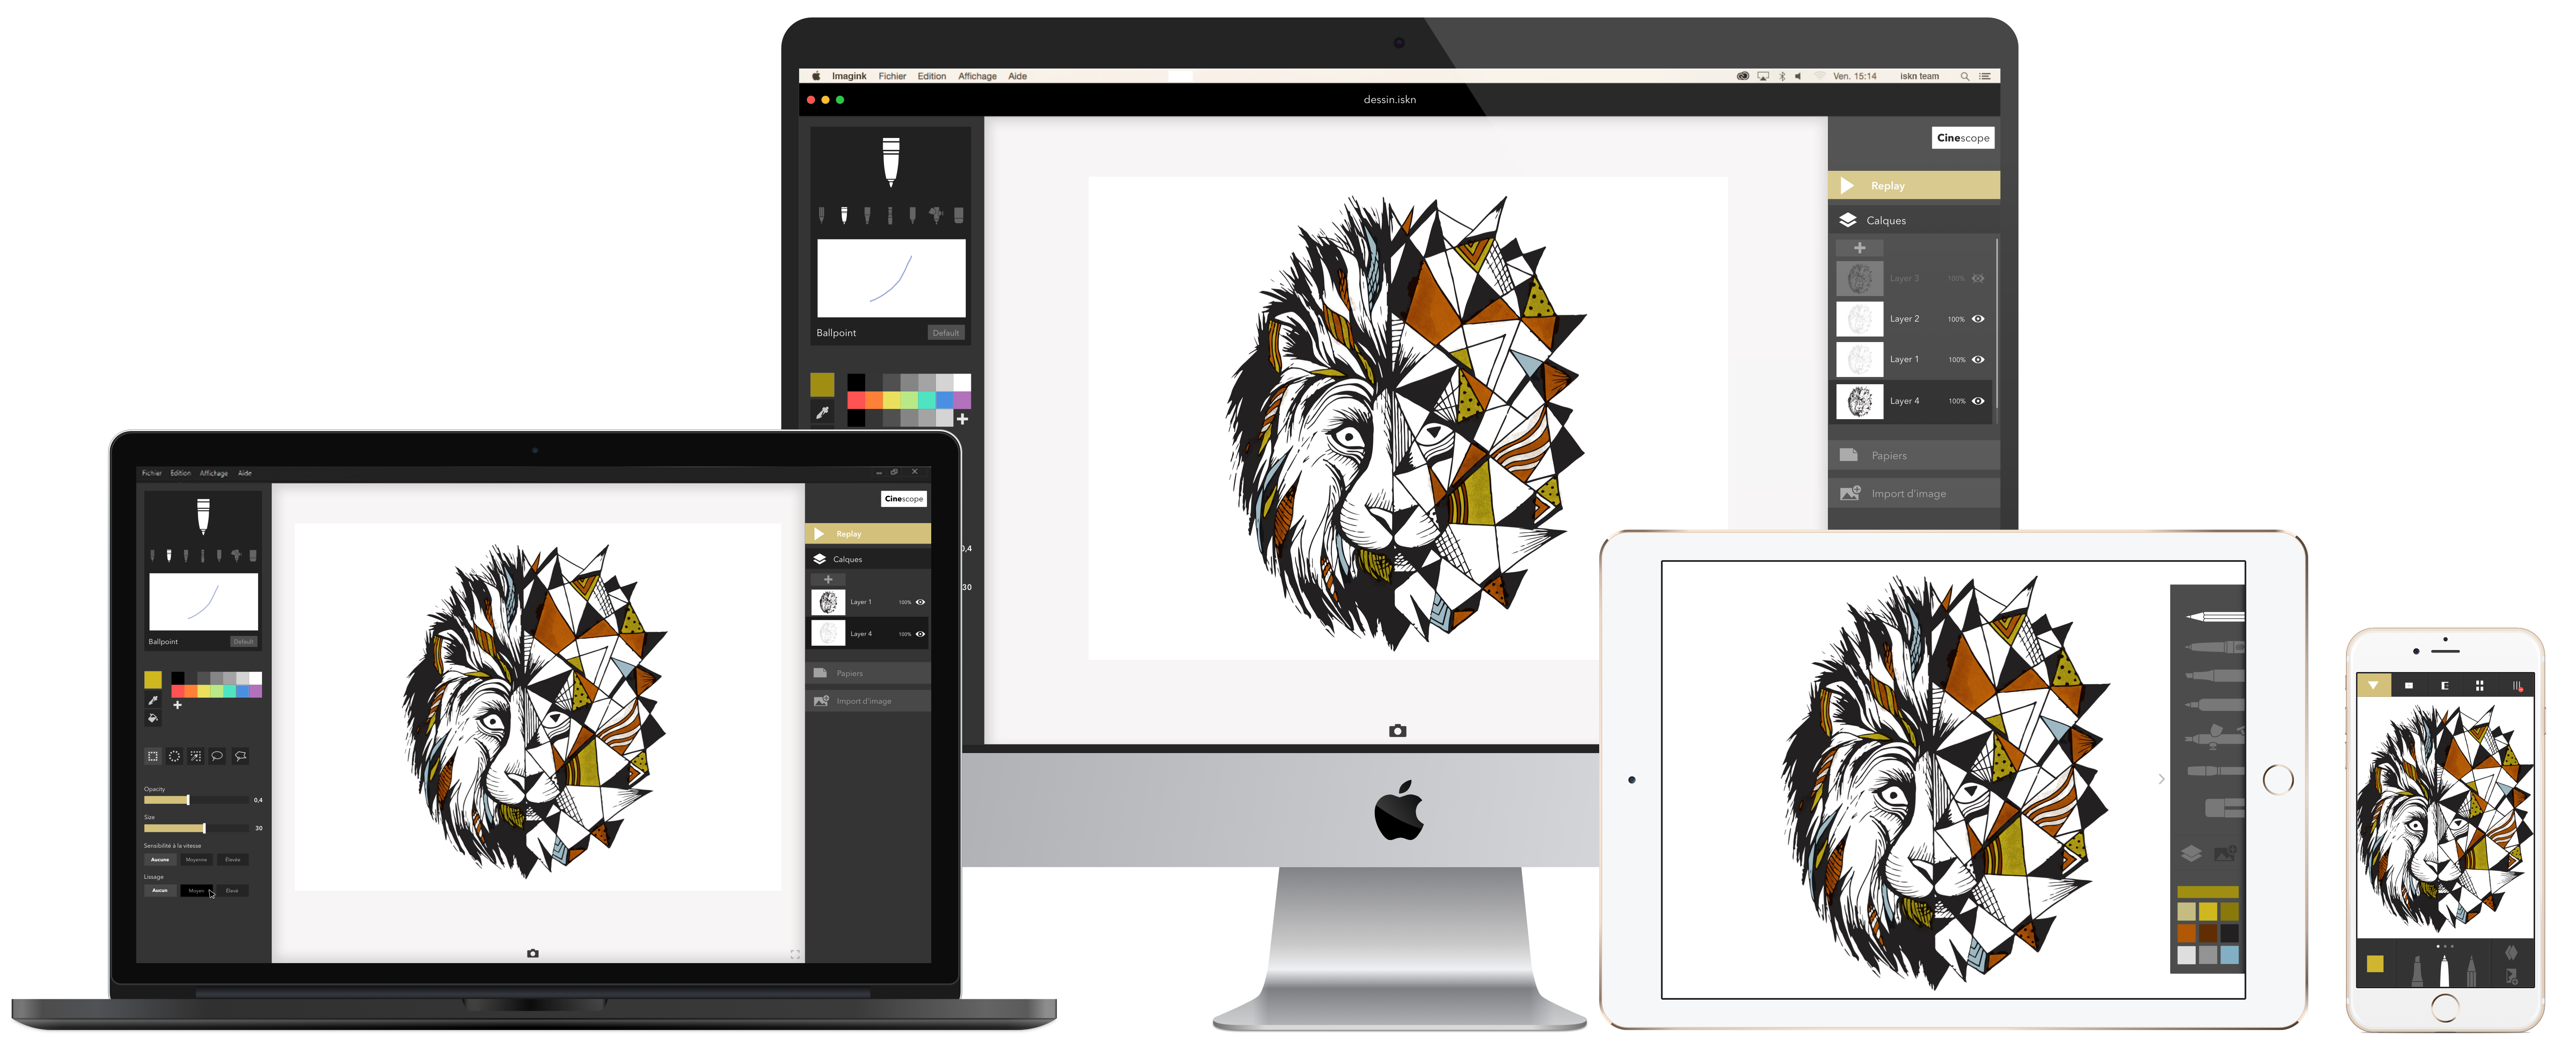 Digitizing drawing iskn. New beta is out